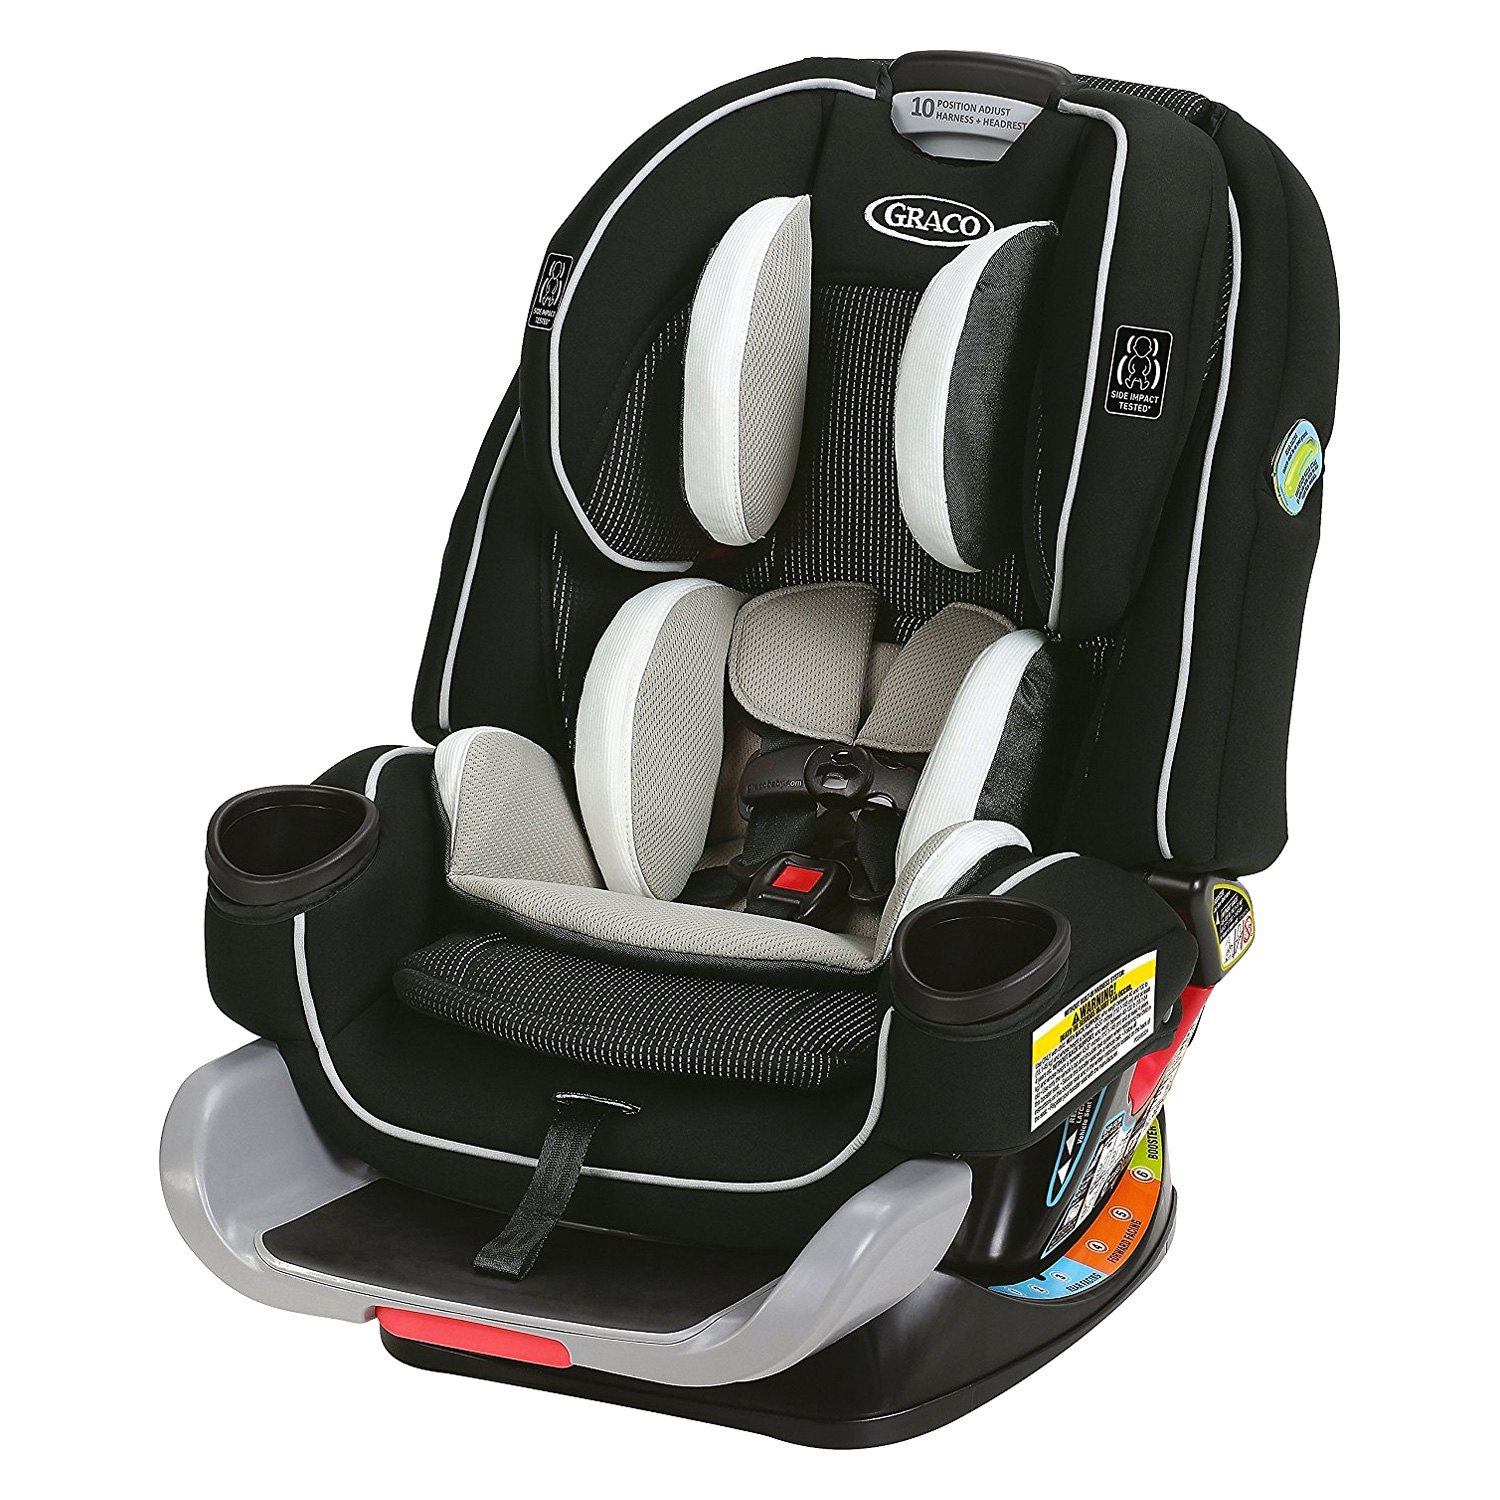 graco baby 4ever extend2fit all in one convertible car seat. Black Bedroom Furniture Sets. Home Design Ideas